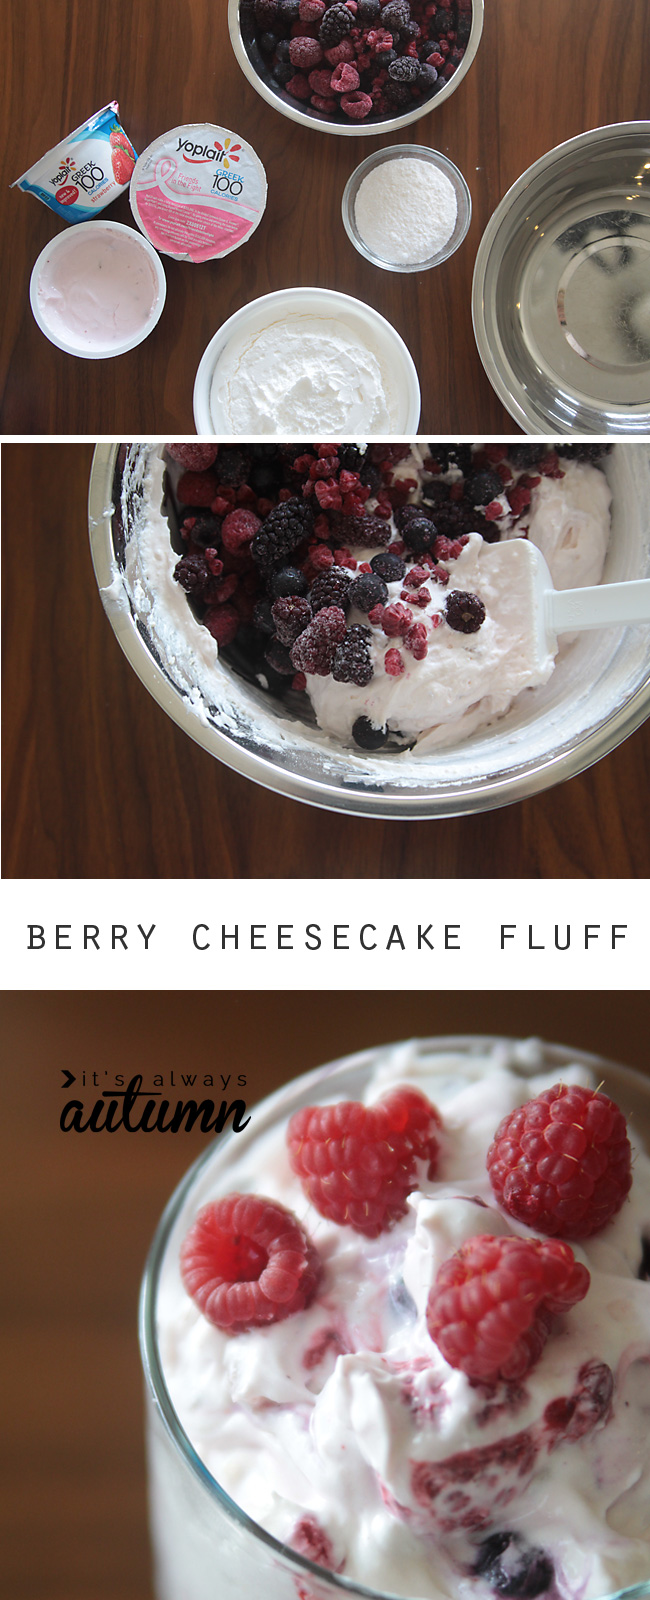 This berry cheesecake fluff is quick and easy to make and works for a side dish or light holiday dessert!